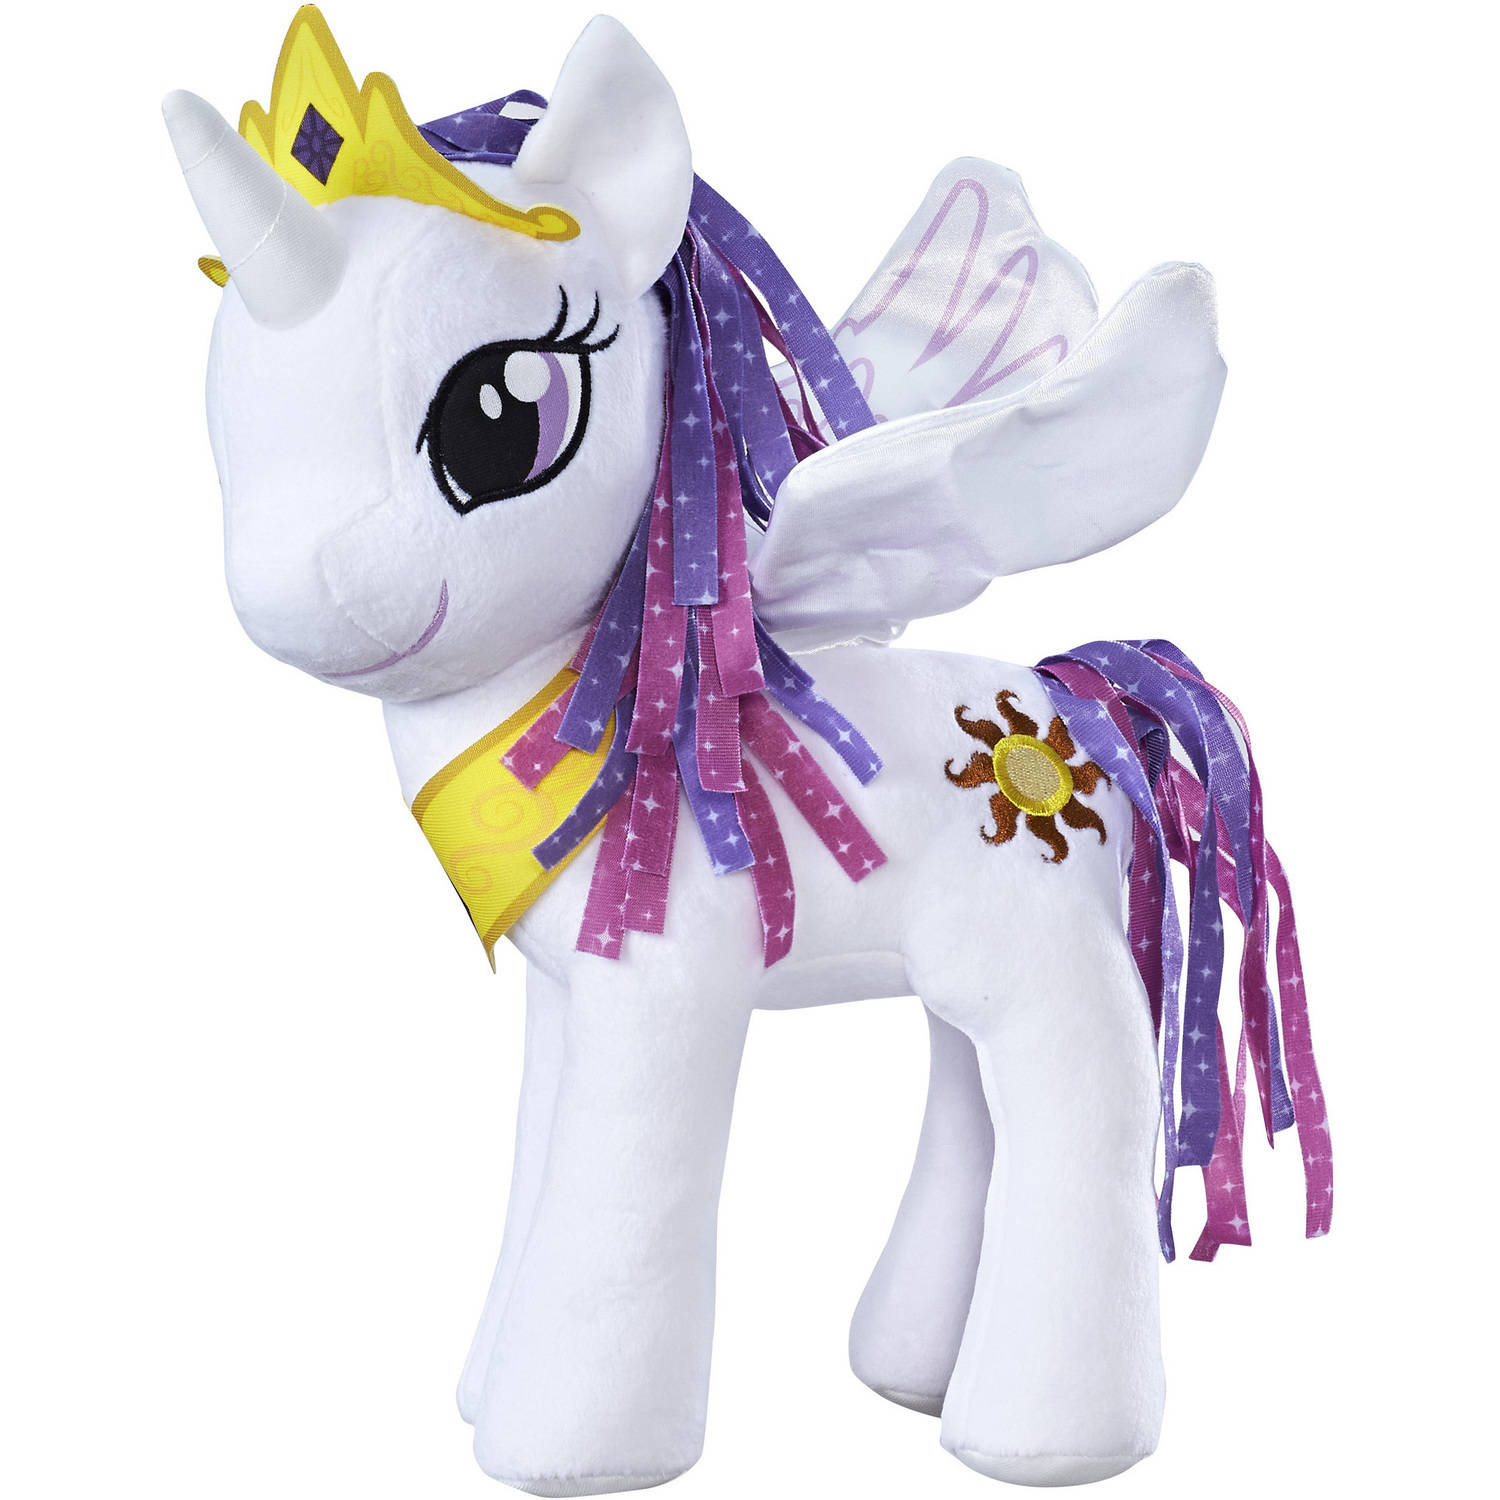 My Little Pony Friendship is Magic Princess Celestia Feature Wings Plush by Hasbro Inc